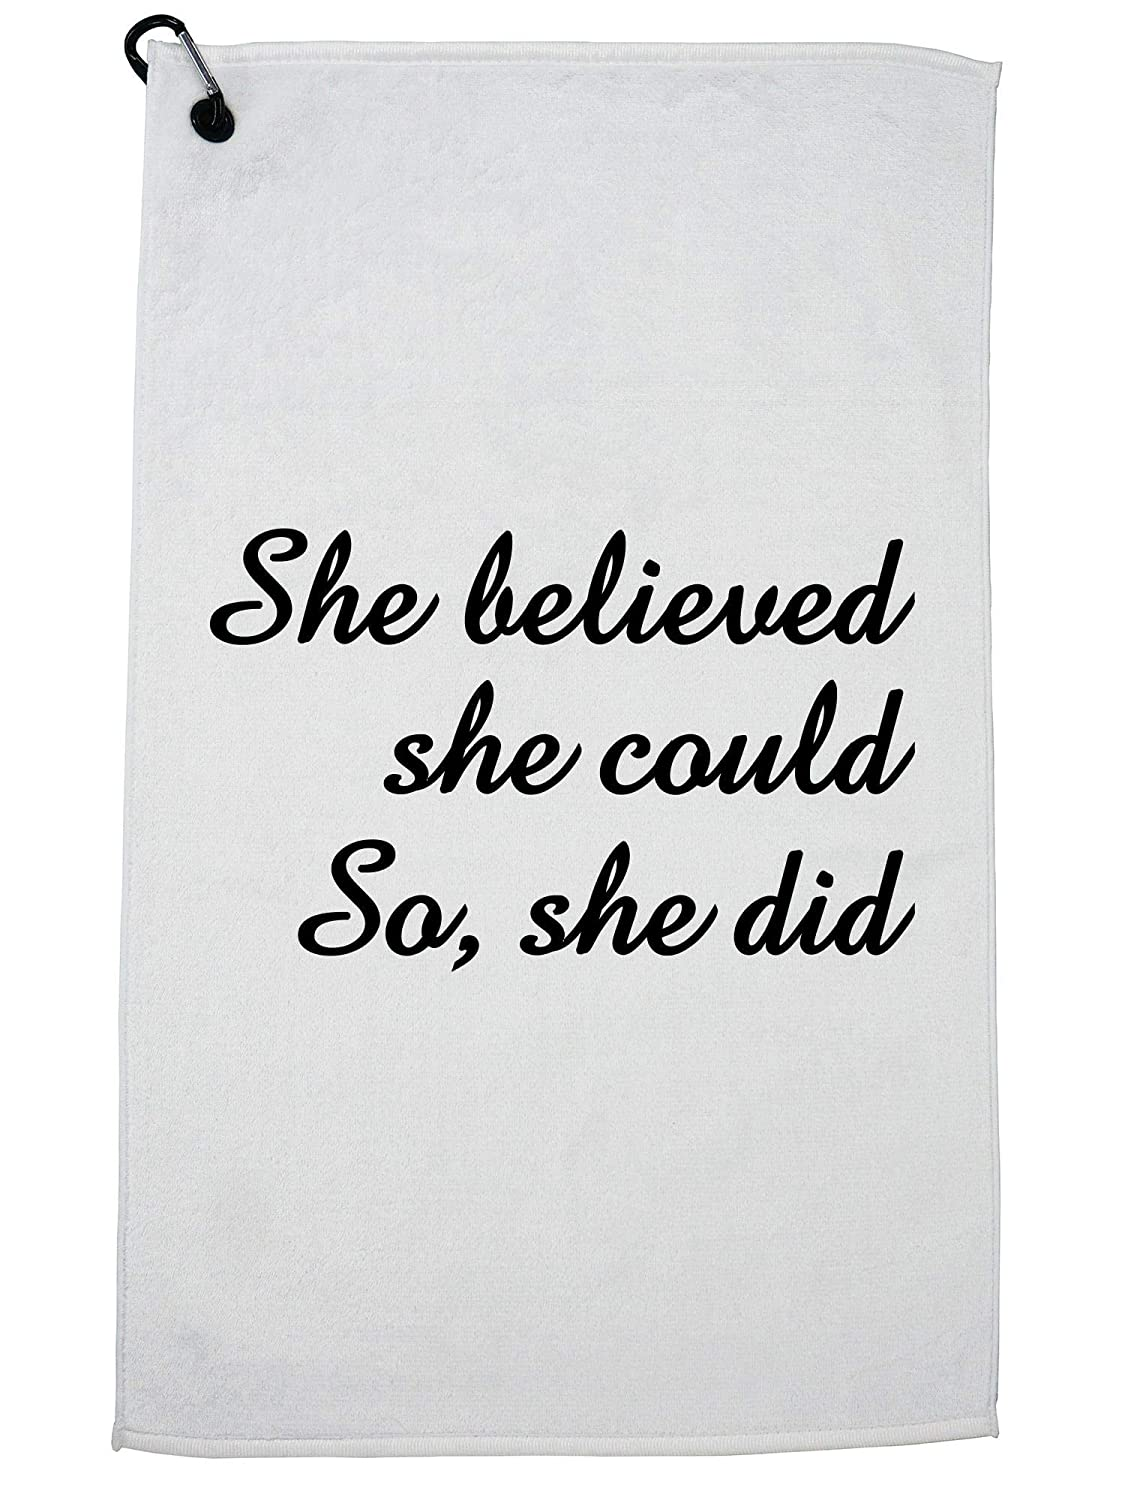 Hollywood Thread Girl Power - She Believed She Could, So She Did! カラビナクリップ付きゴルフタオル。   B07GSLN1H6